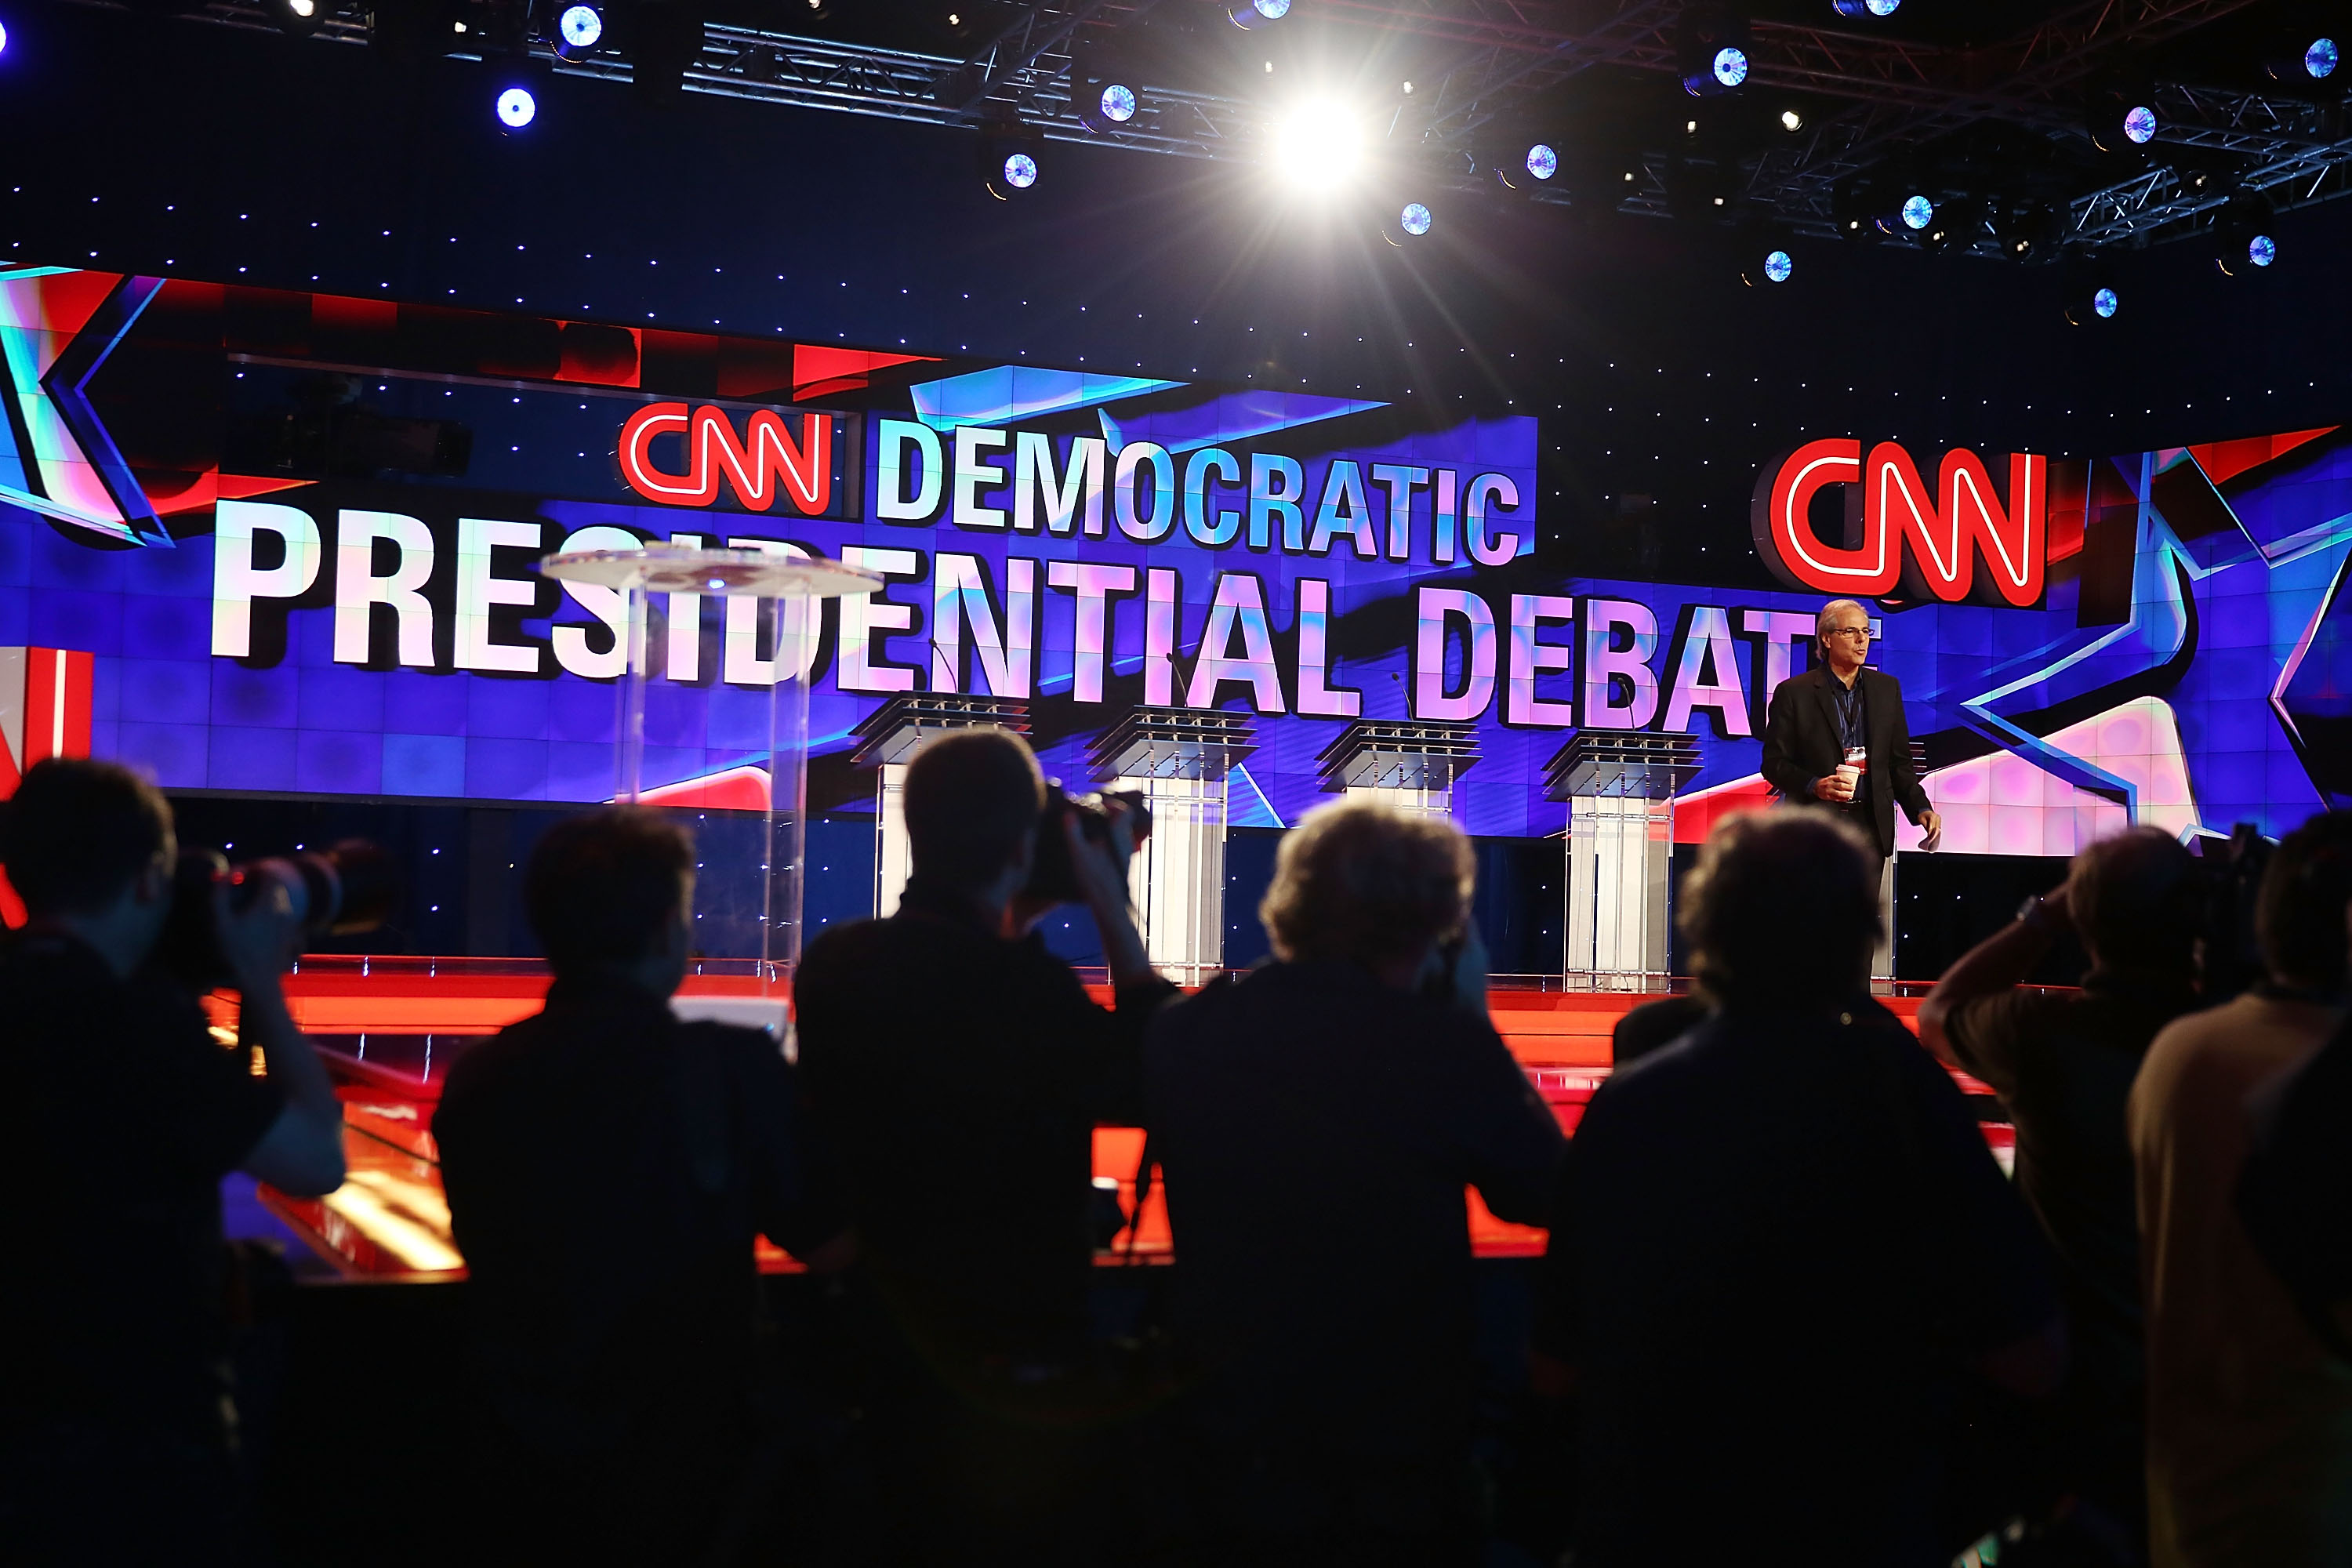 LAS VEGAS, NV - OCTOBER 13:  Journalists check the debate stage during a walk-through before the Democratic Presidential candidates arrive for their CNN Facebook Democratic Debate this evening at the Wynn Las Vegas on October 13, 2015 in Las Vegas, Nevada. Democratic presidential candidates are participating in the party's first presidential debate.  (Photo by Joe Raedle/Getty Images)